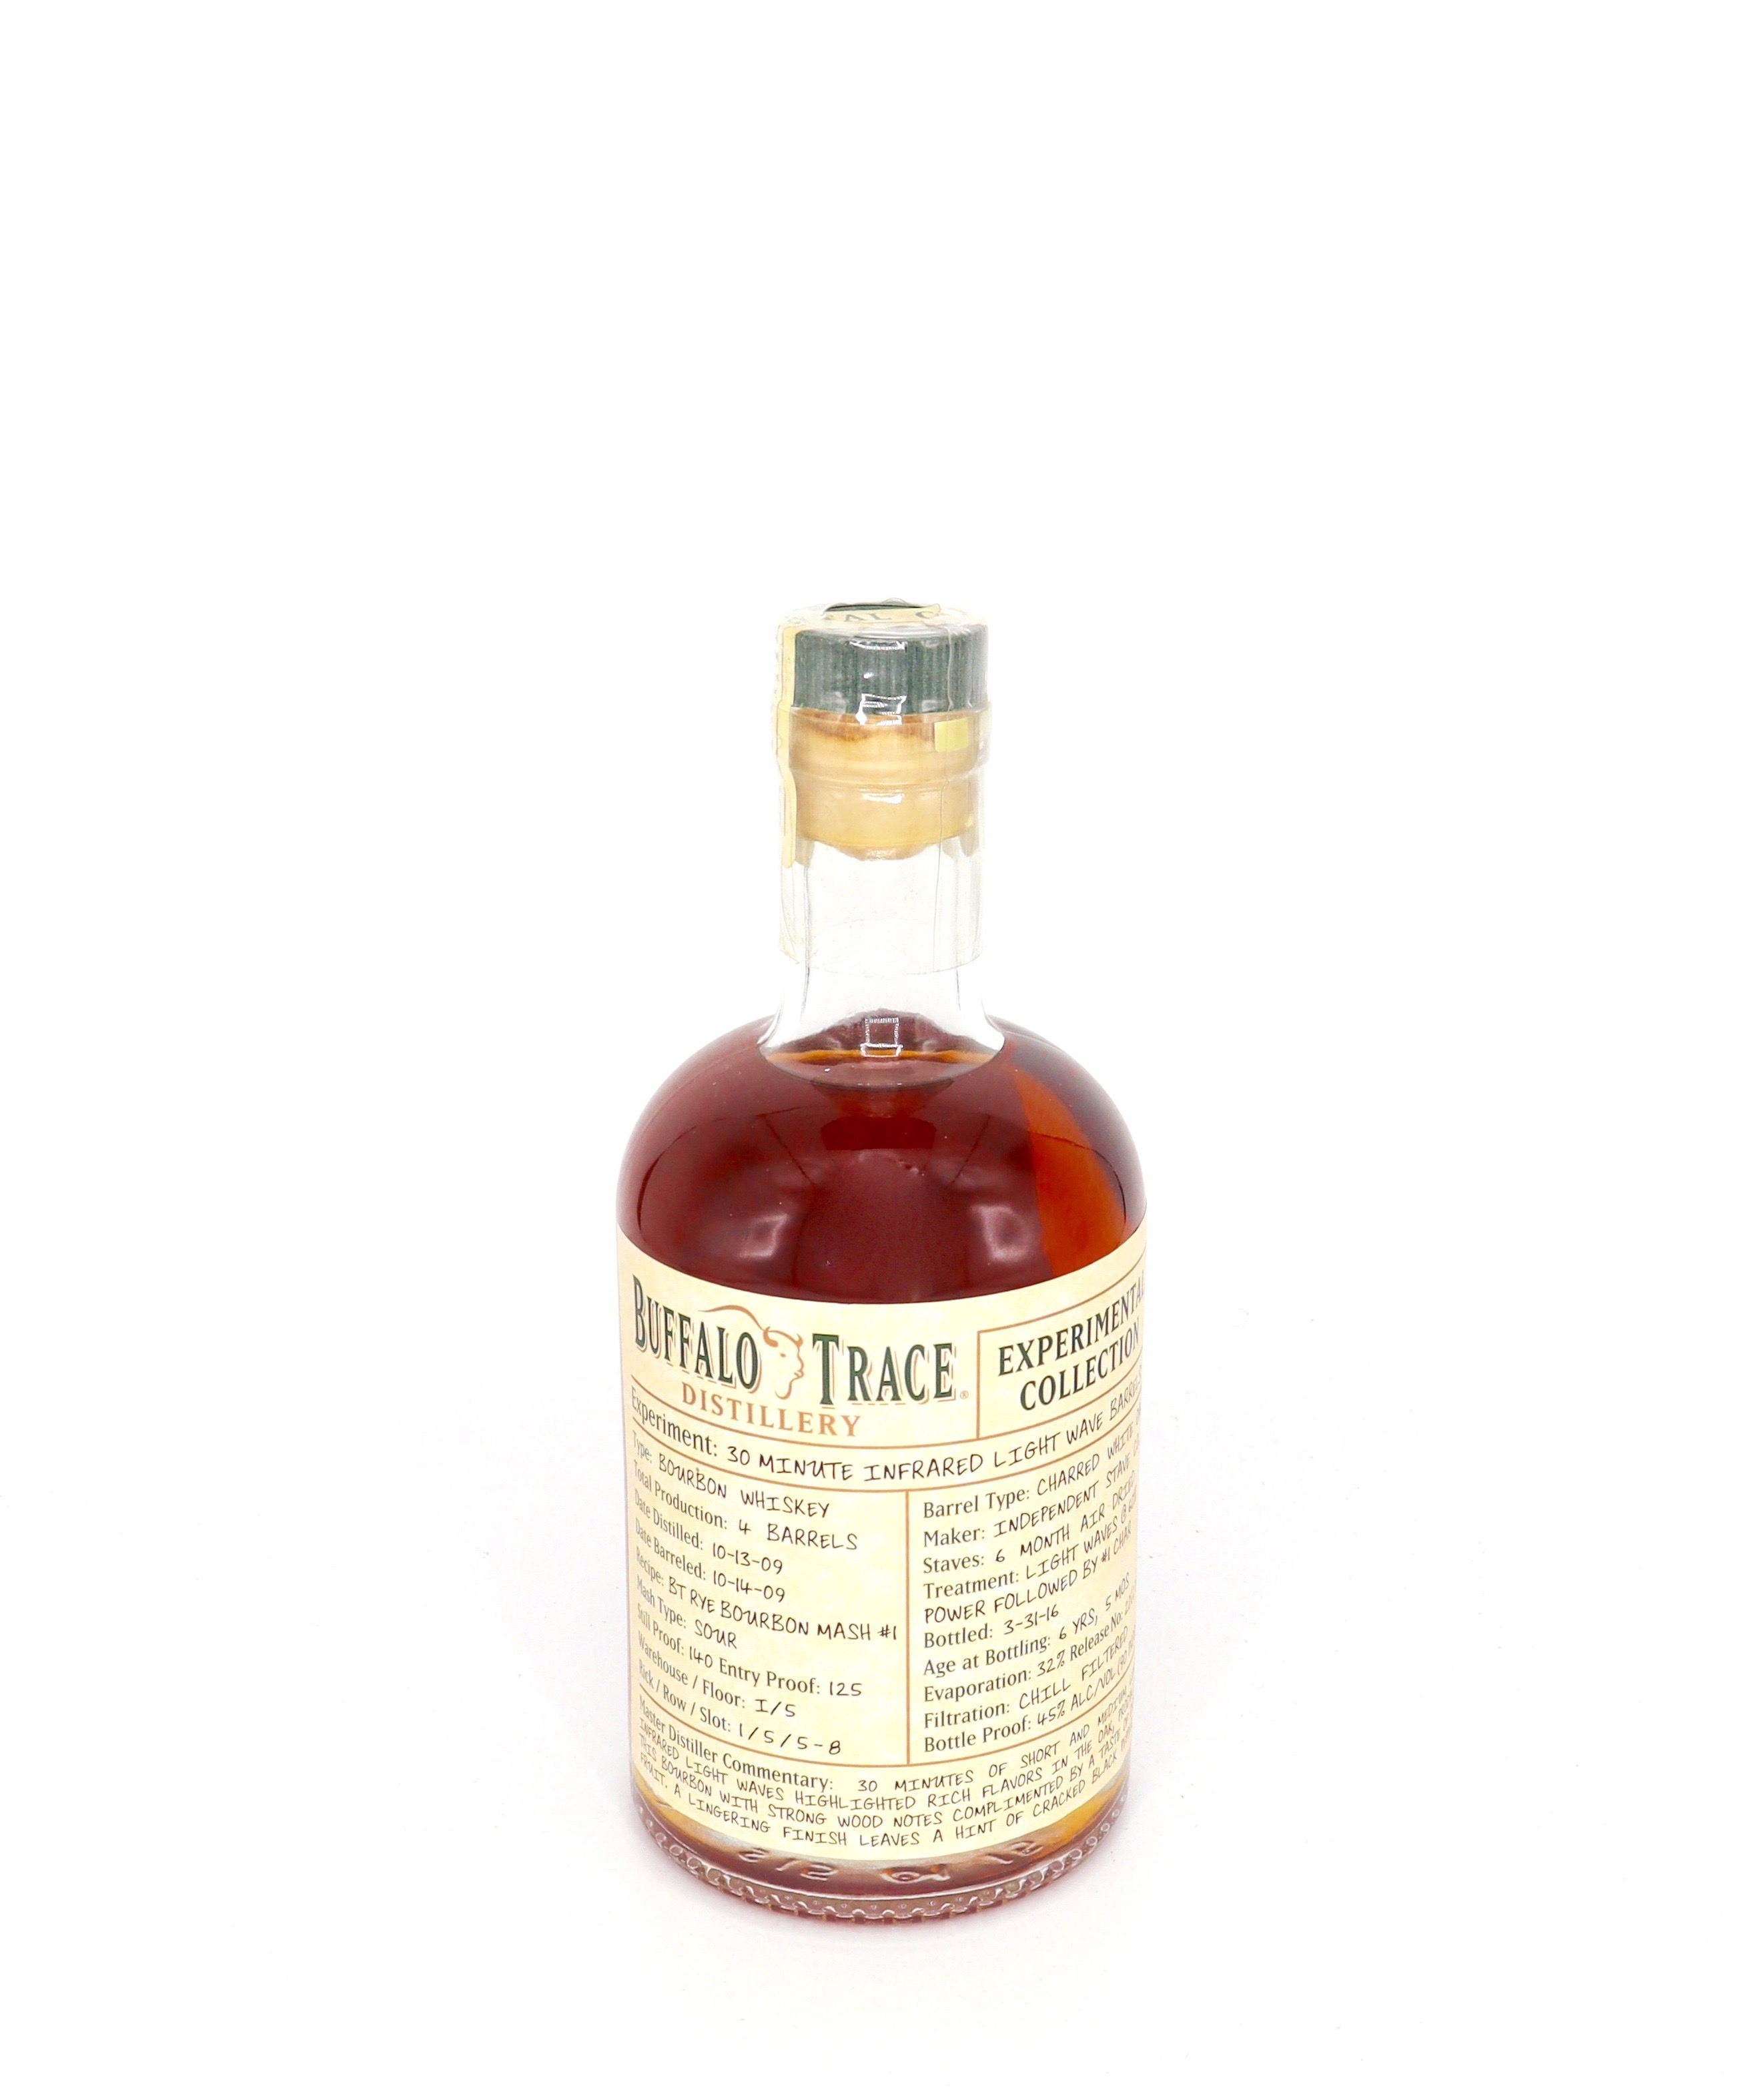 Buffalo Trace Experimental Collection 30 Minute Infrared light Wave Barrels 90 proof